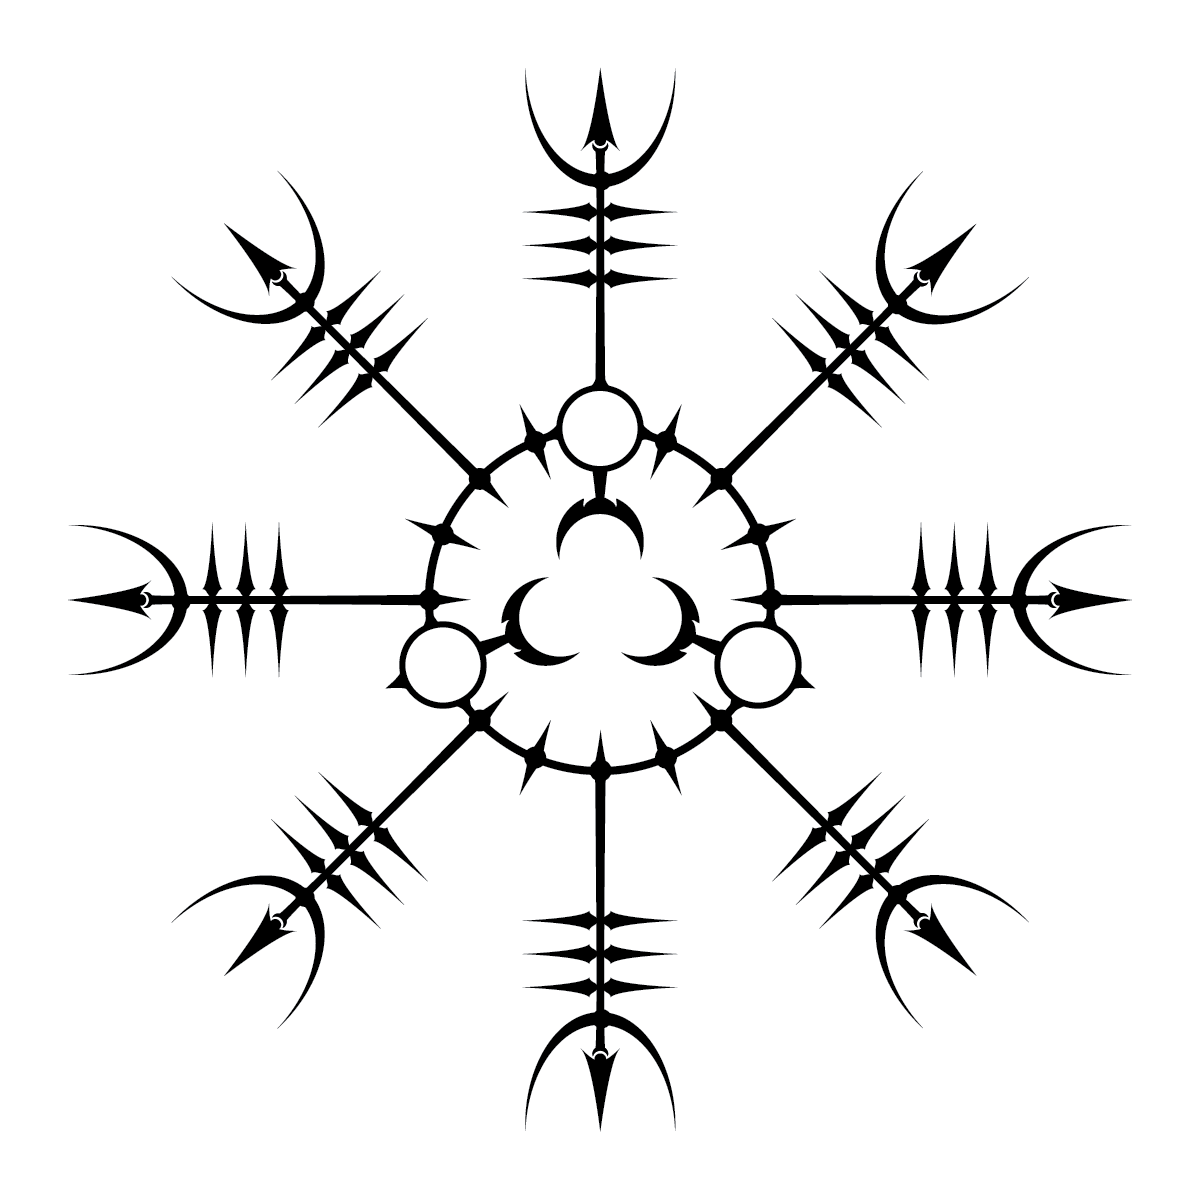 Norse symbols and meanings google search tattoo pinterest norse symbols and meanings google search tattoo pinterest norse symbols tattoo and warrior symbols biocorpaavc Image collections